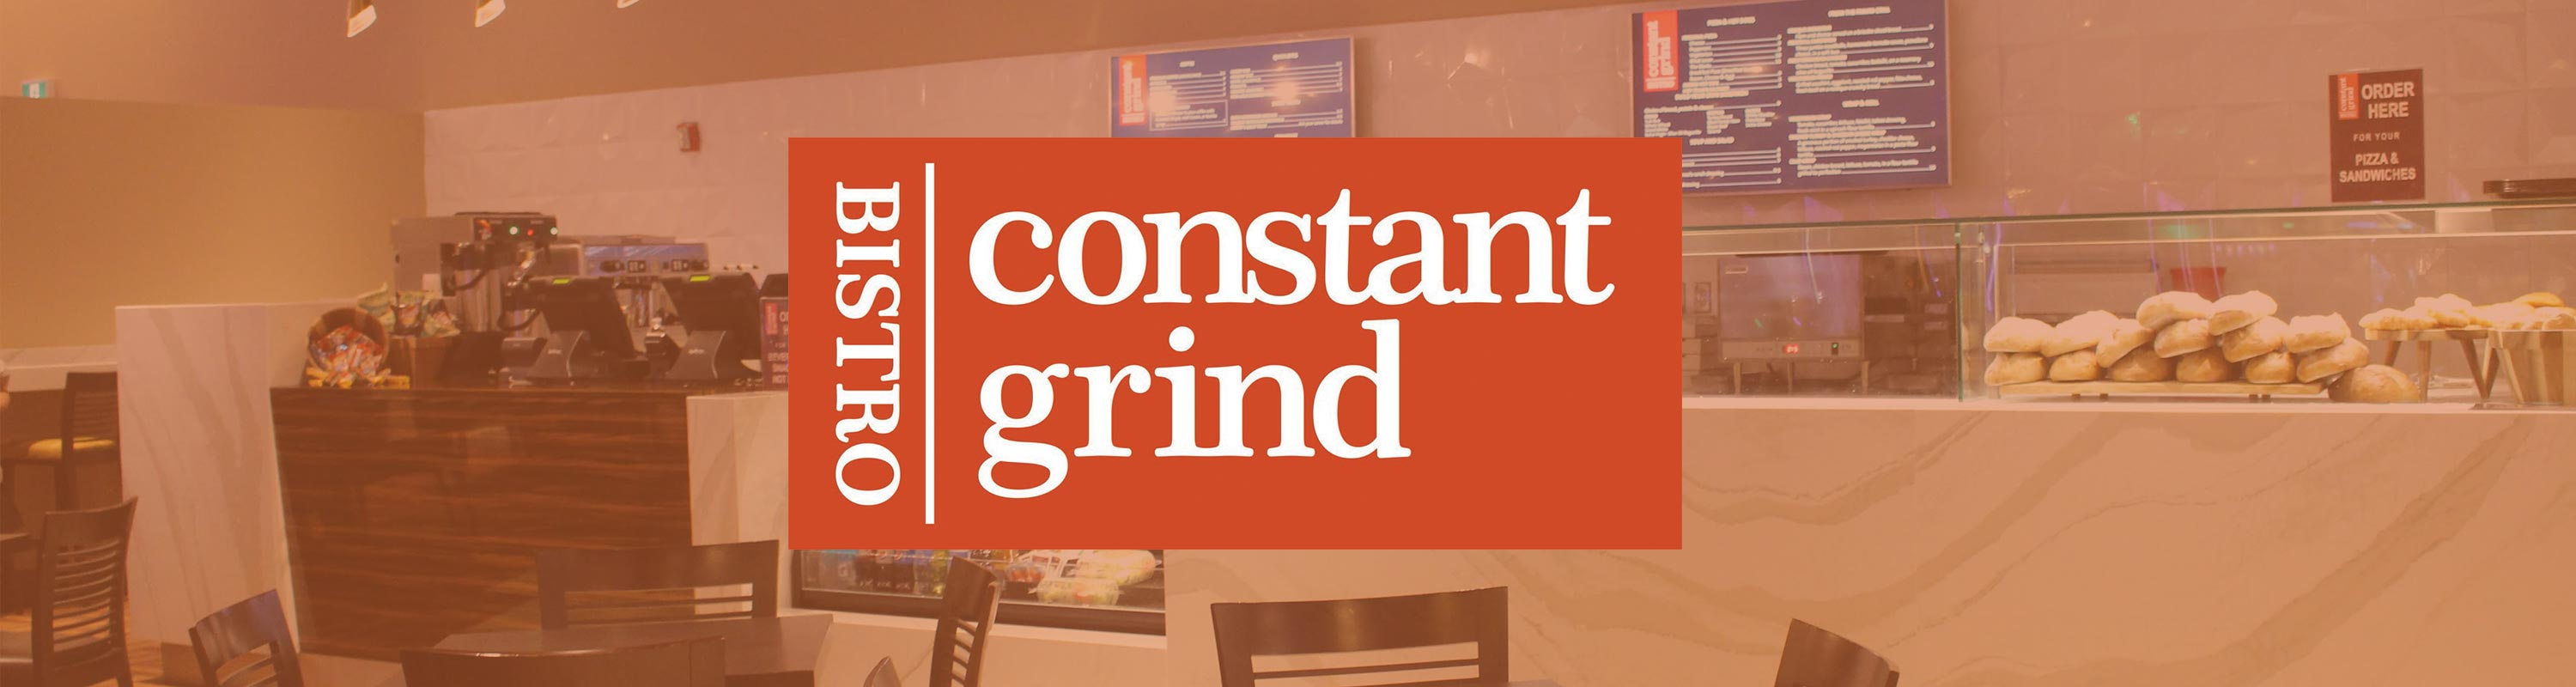 Constant Grind